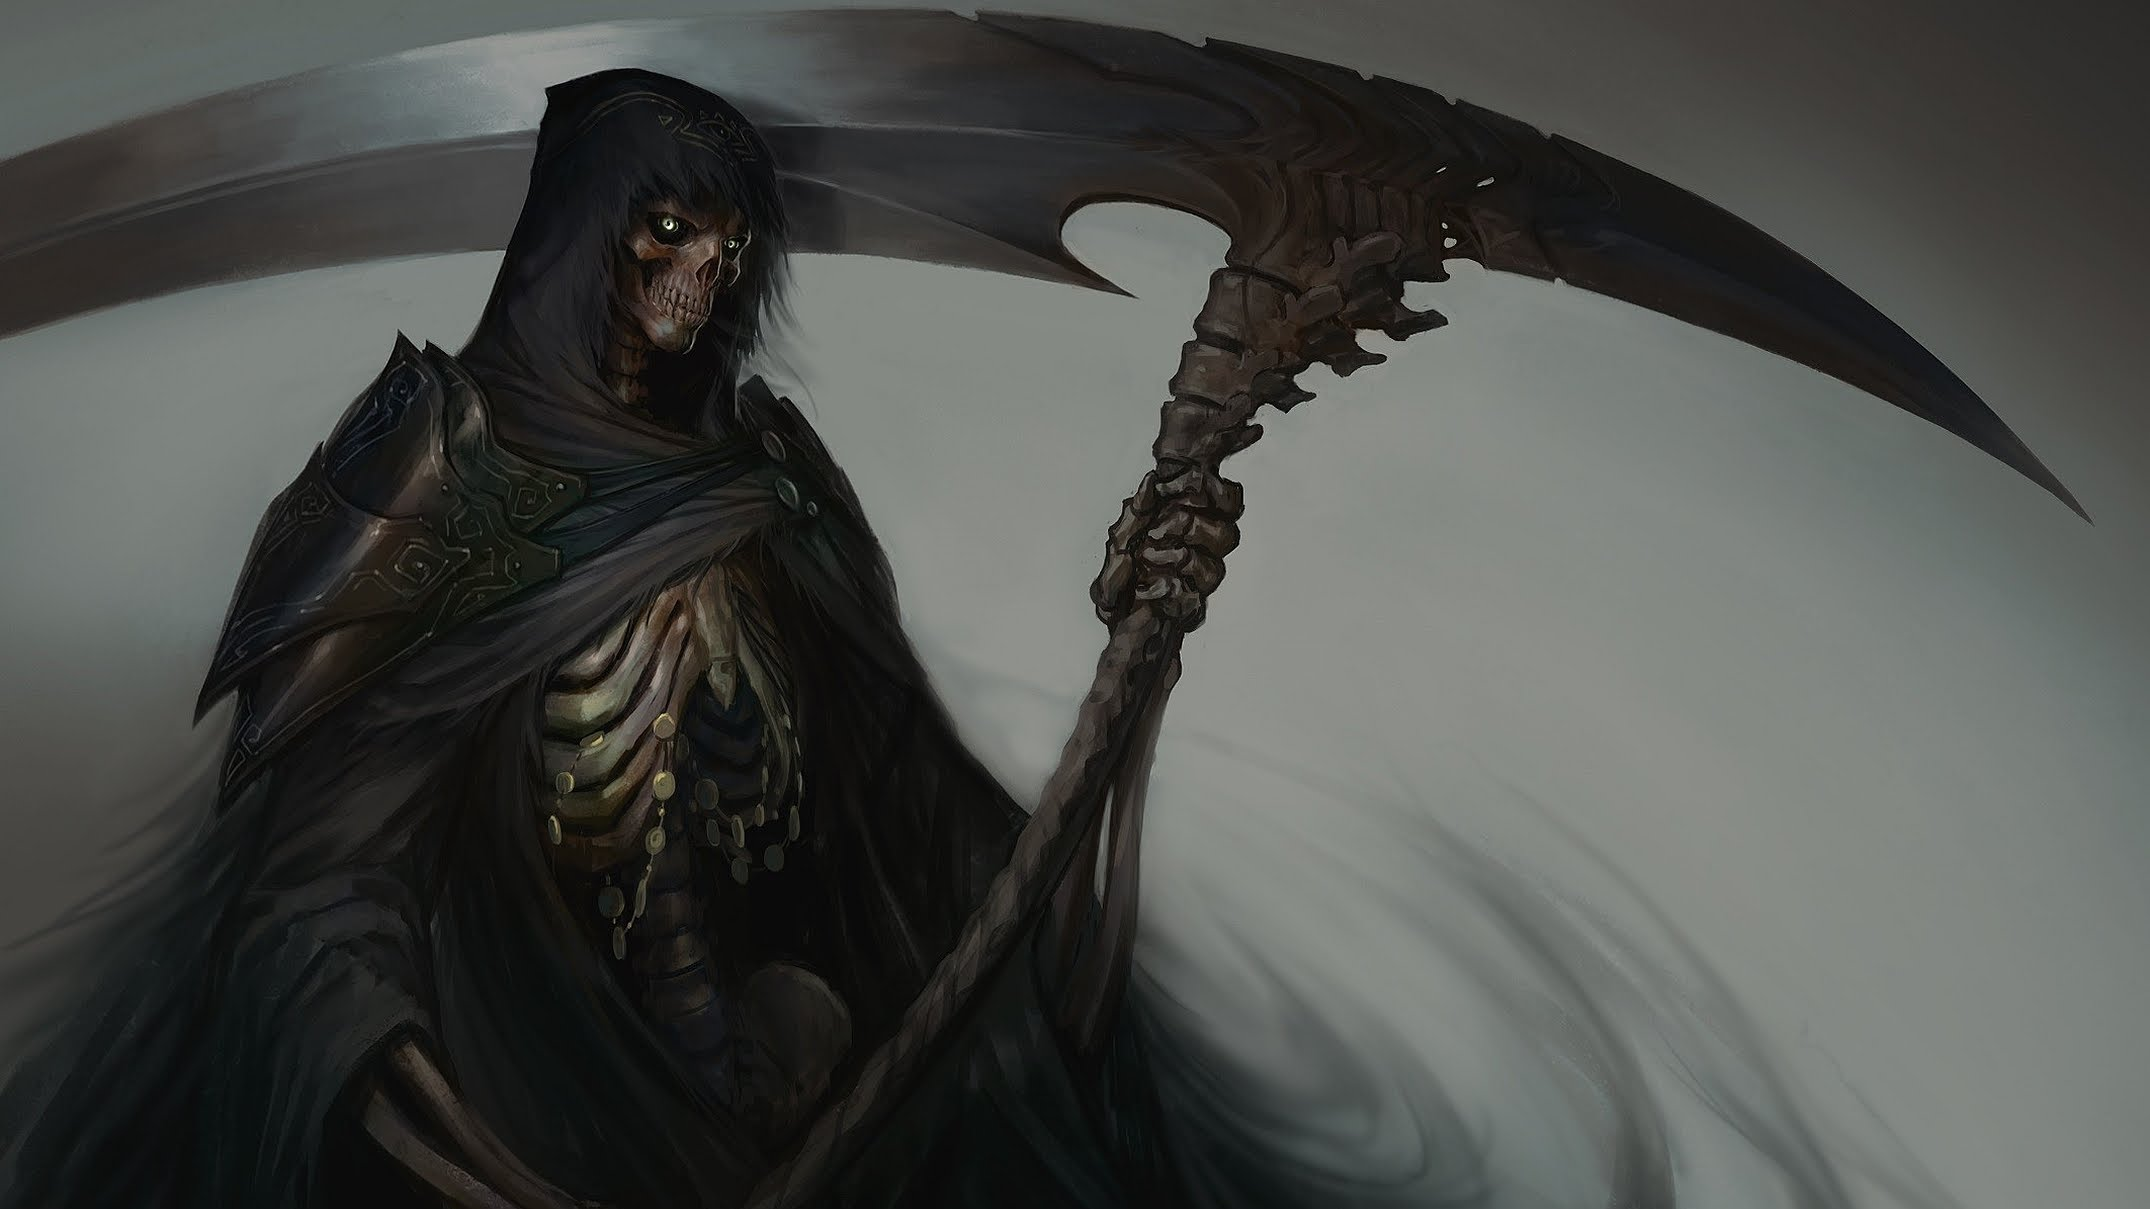 Grim Reaper Wallpapers Dark Hq Grim Reaper Pictures 4k